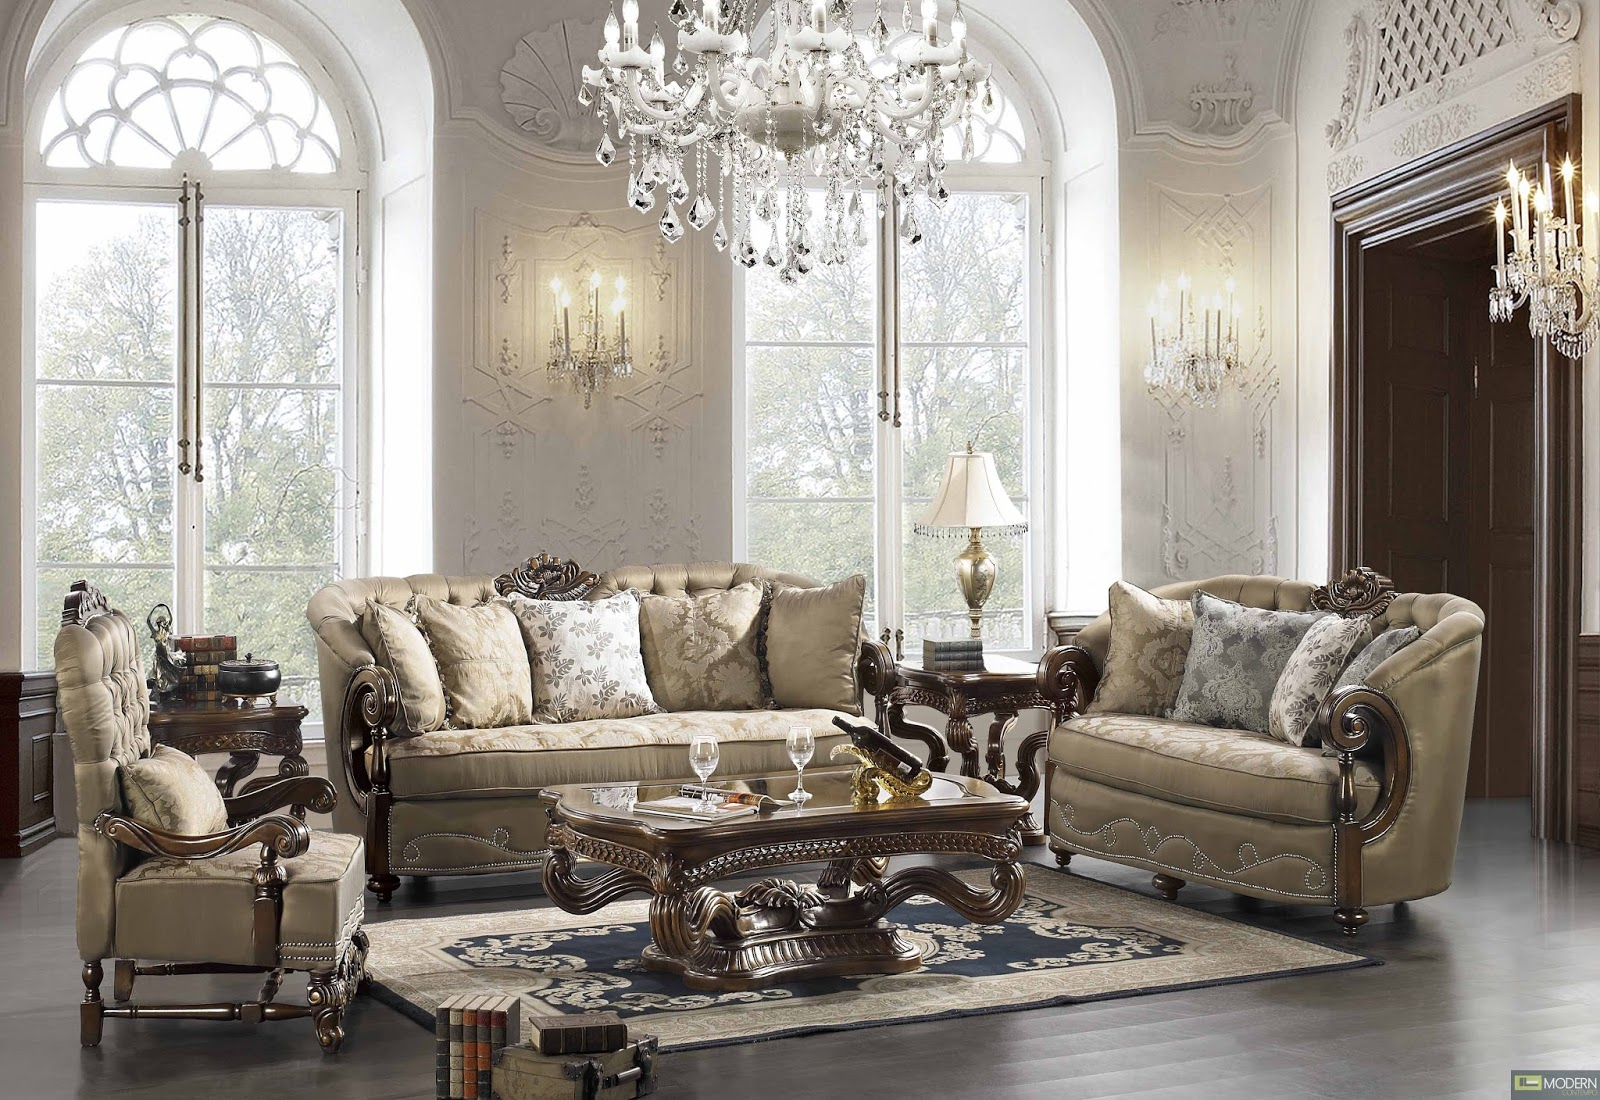 Furniture Styles Luxury Living Room Design Ideas With Antique Vintage